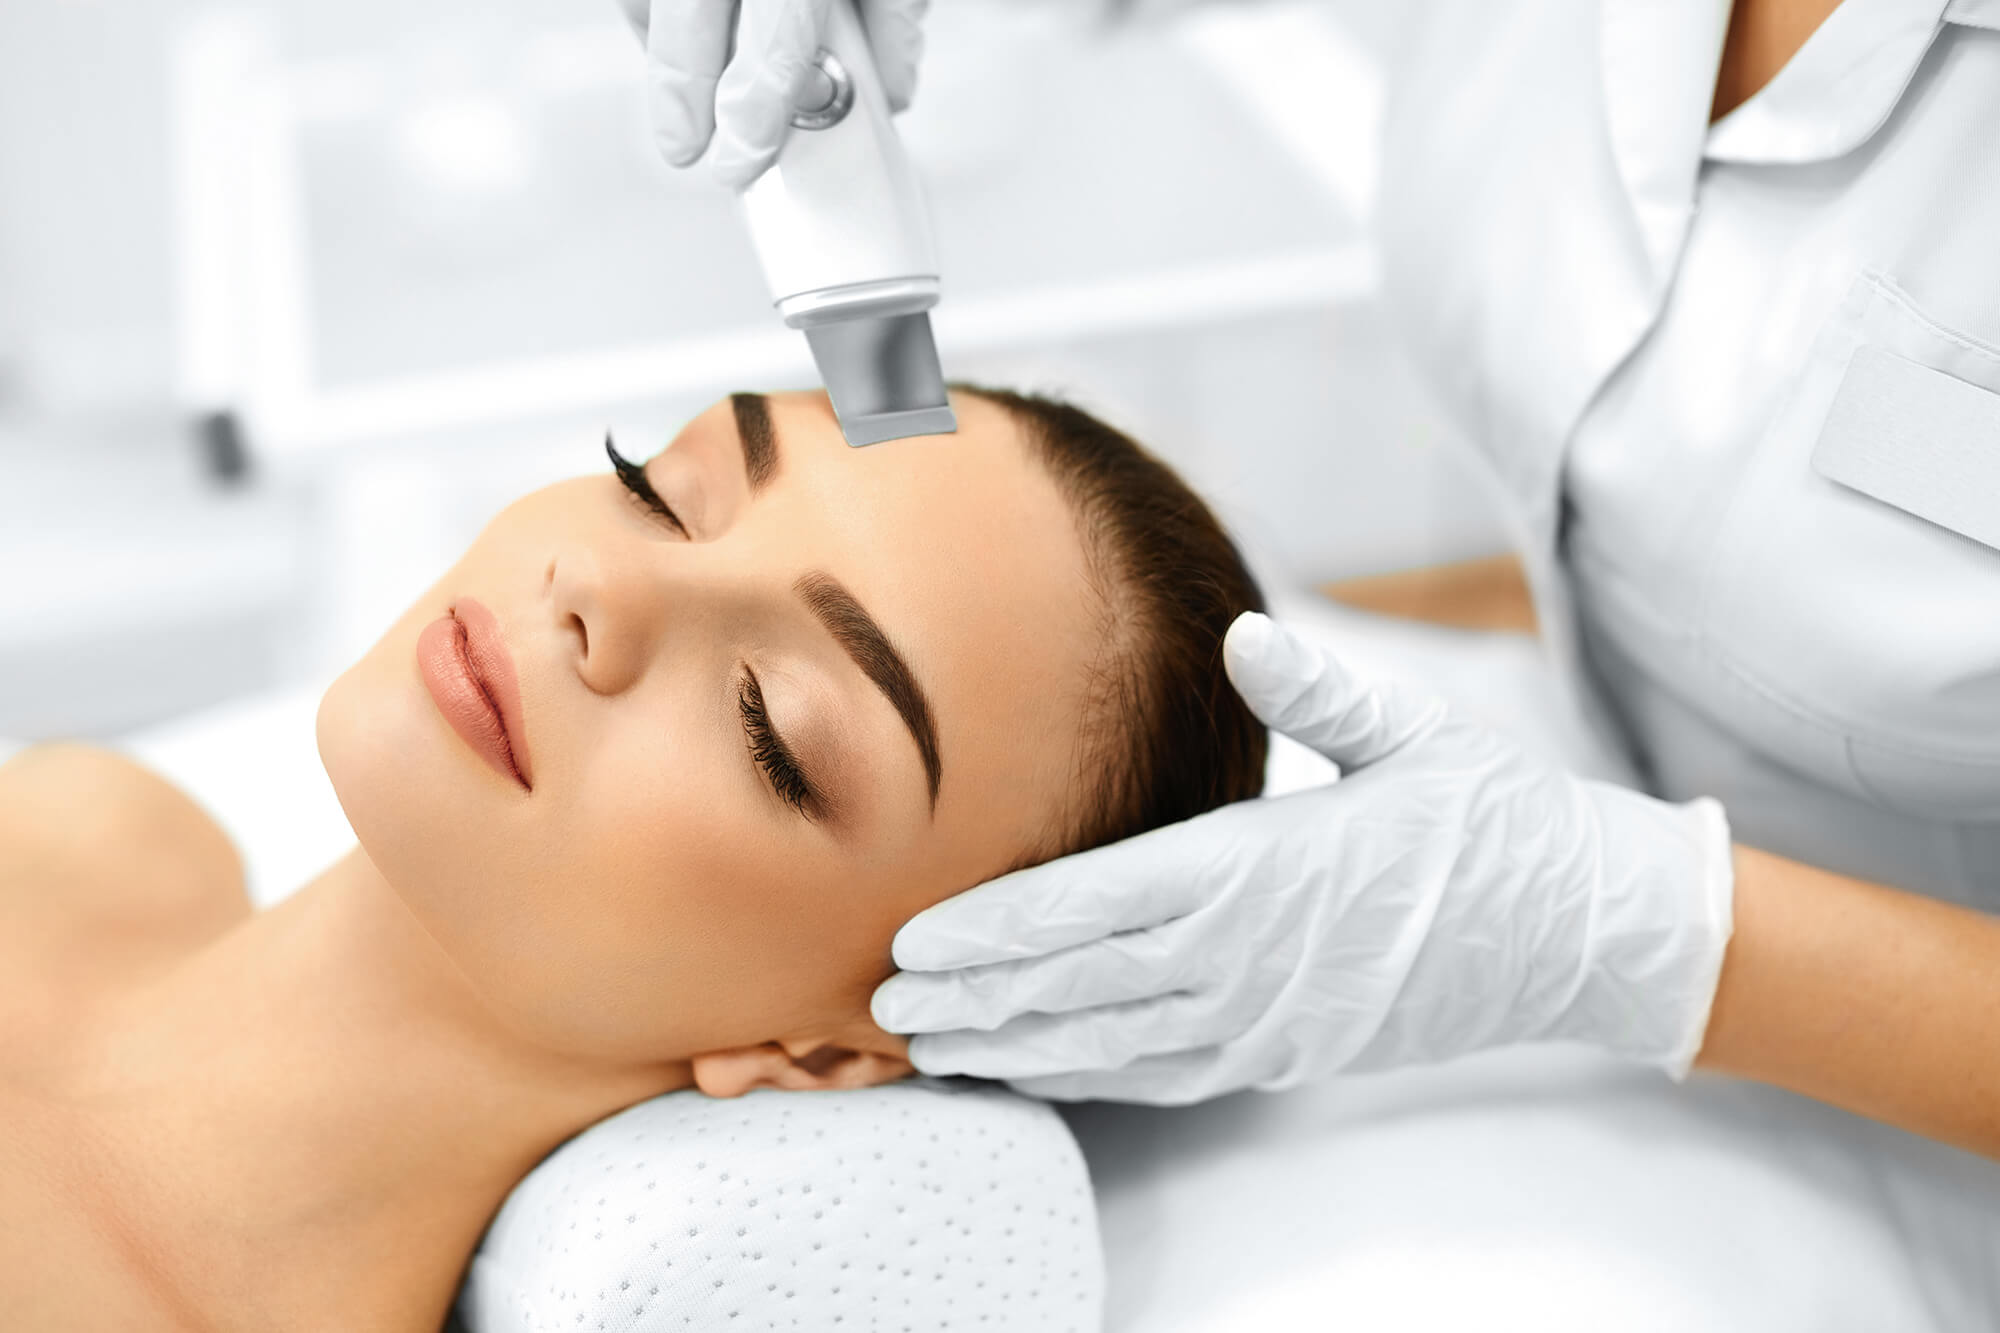 Laser & Aesthetics Skincare Clinic in Lahore on 7th January, 2019